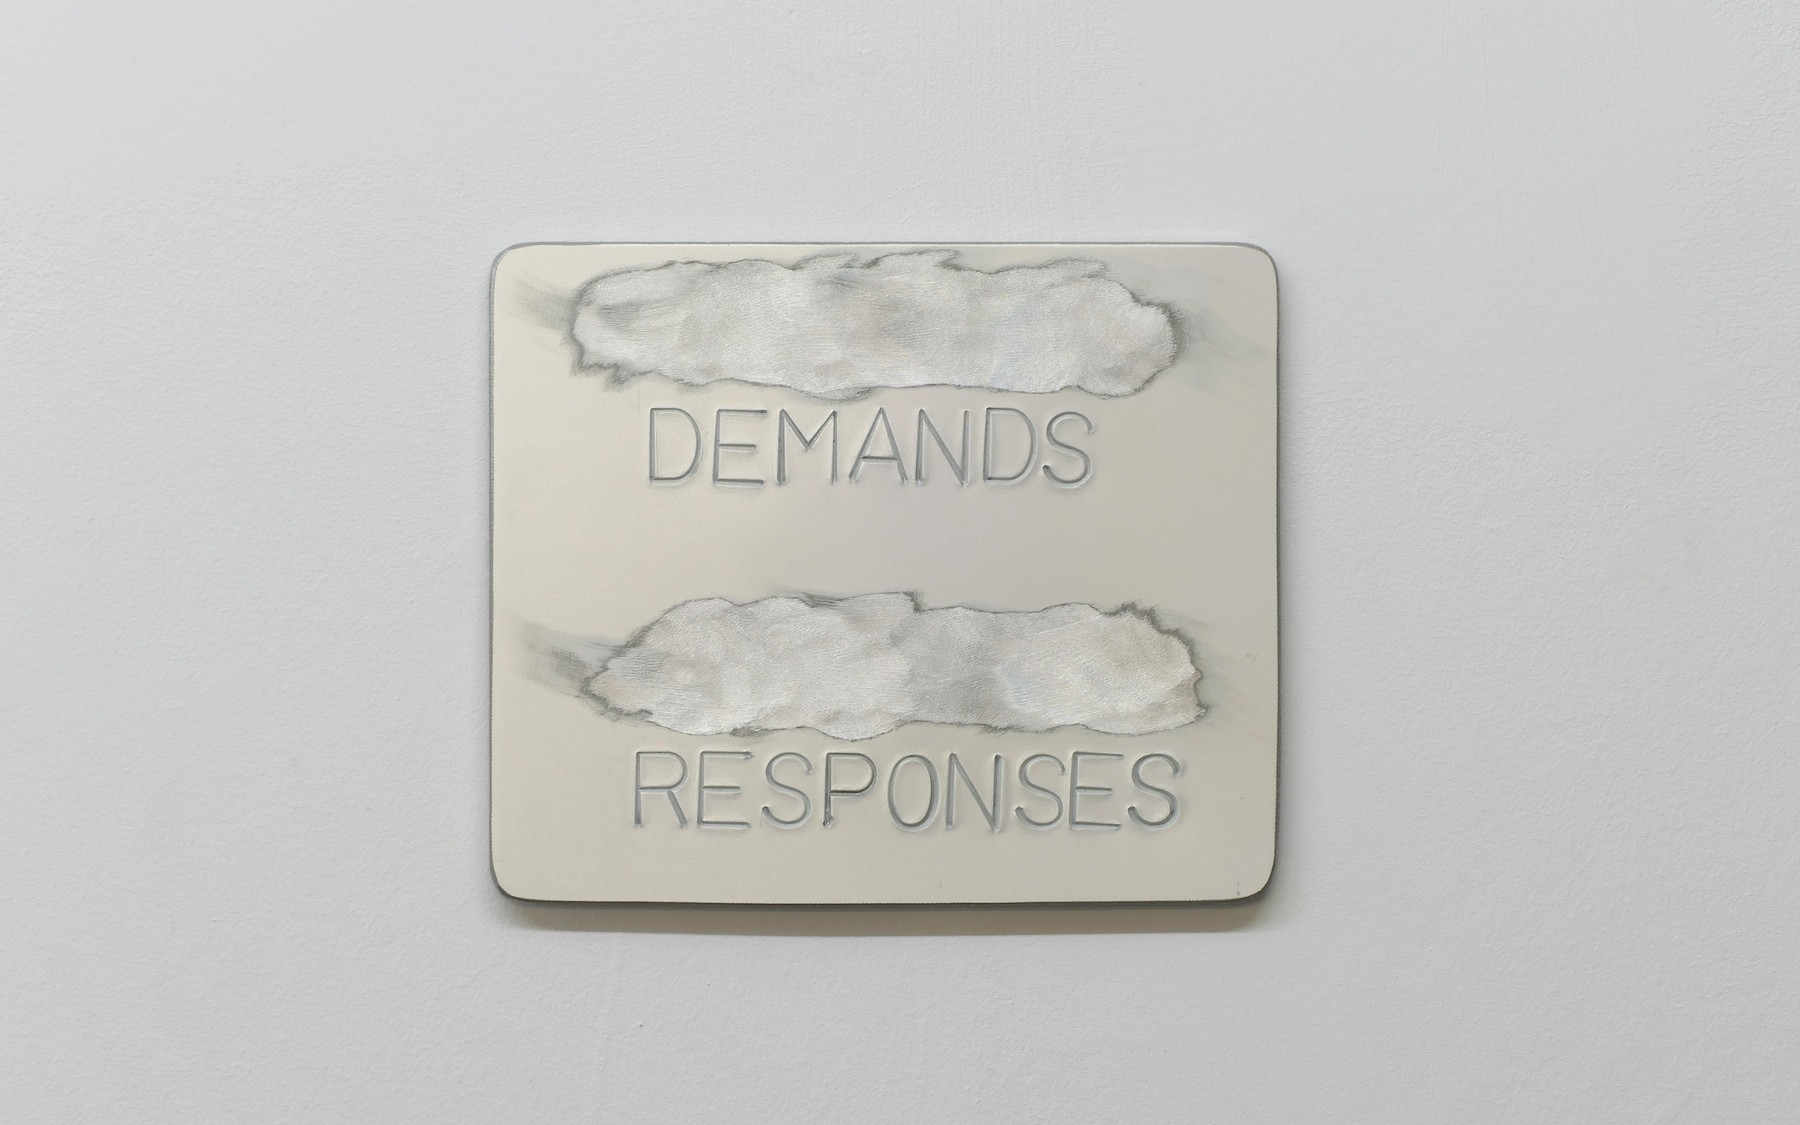 _______DEMANDS_______RESPONSES